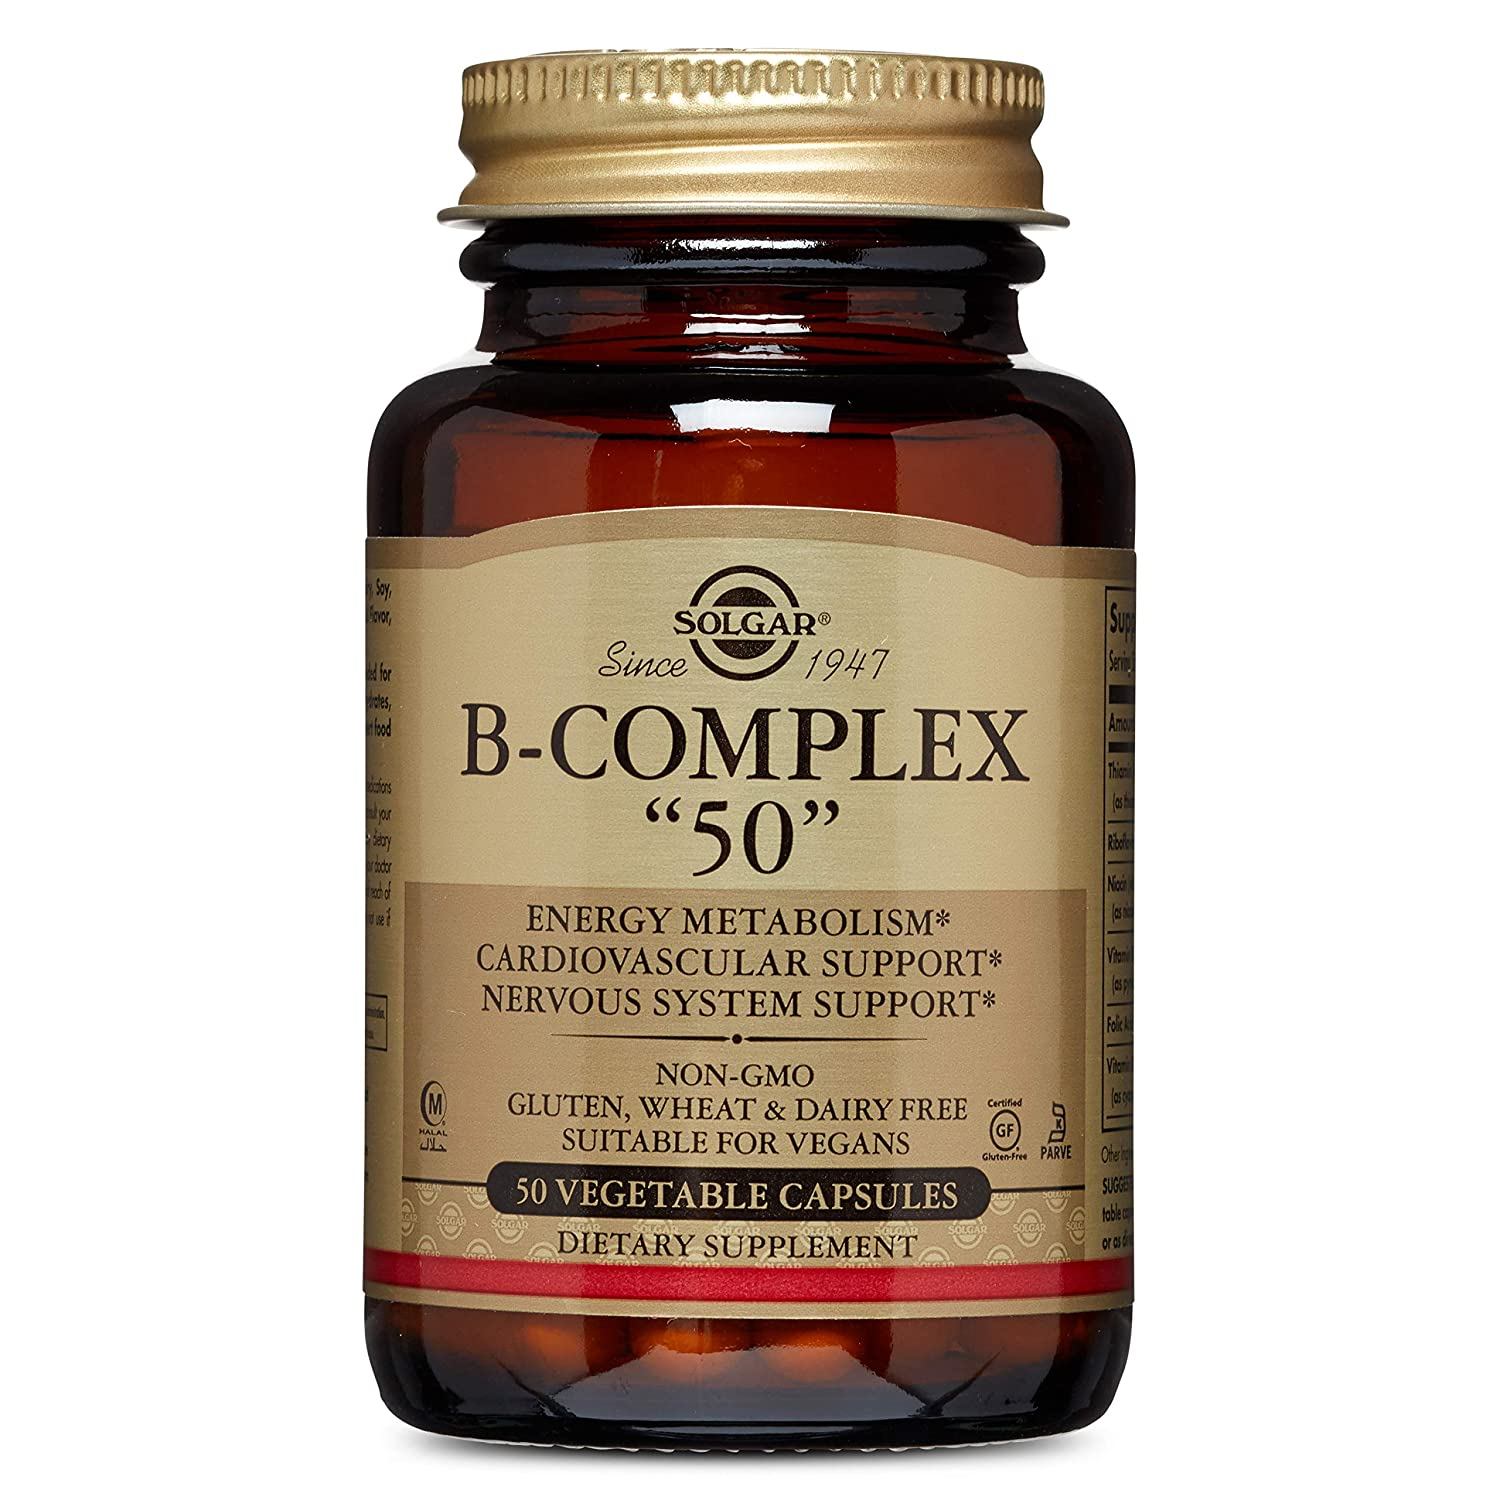 Solgar B-Complex Vegetable Capsules, 50 Count